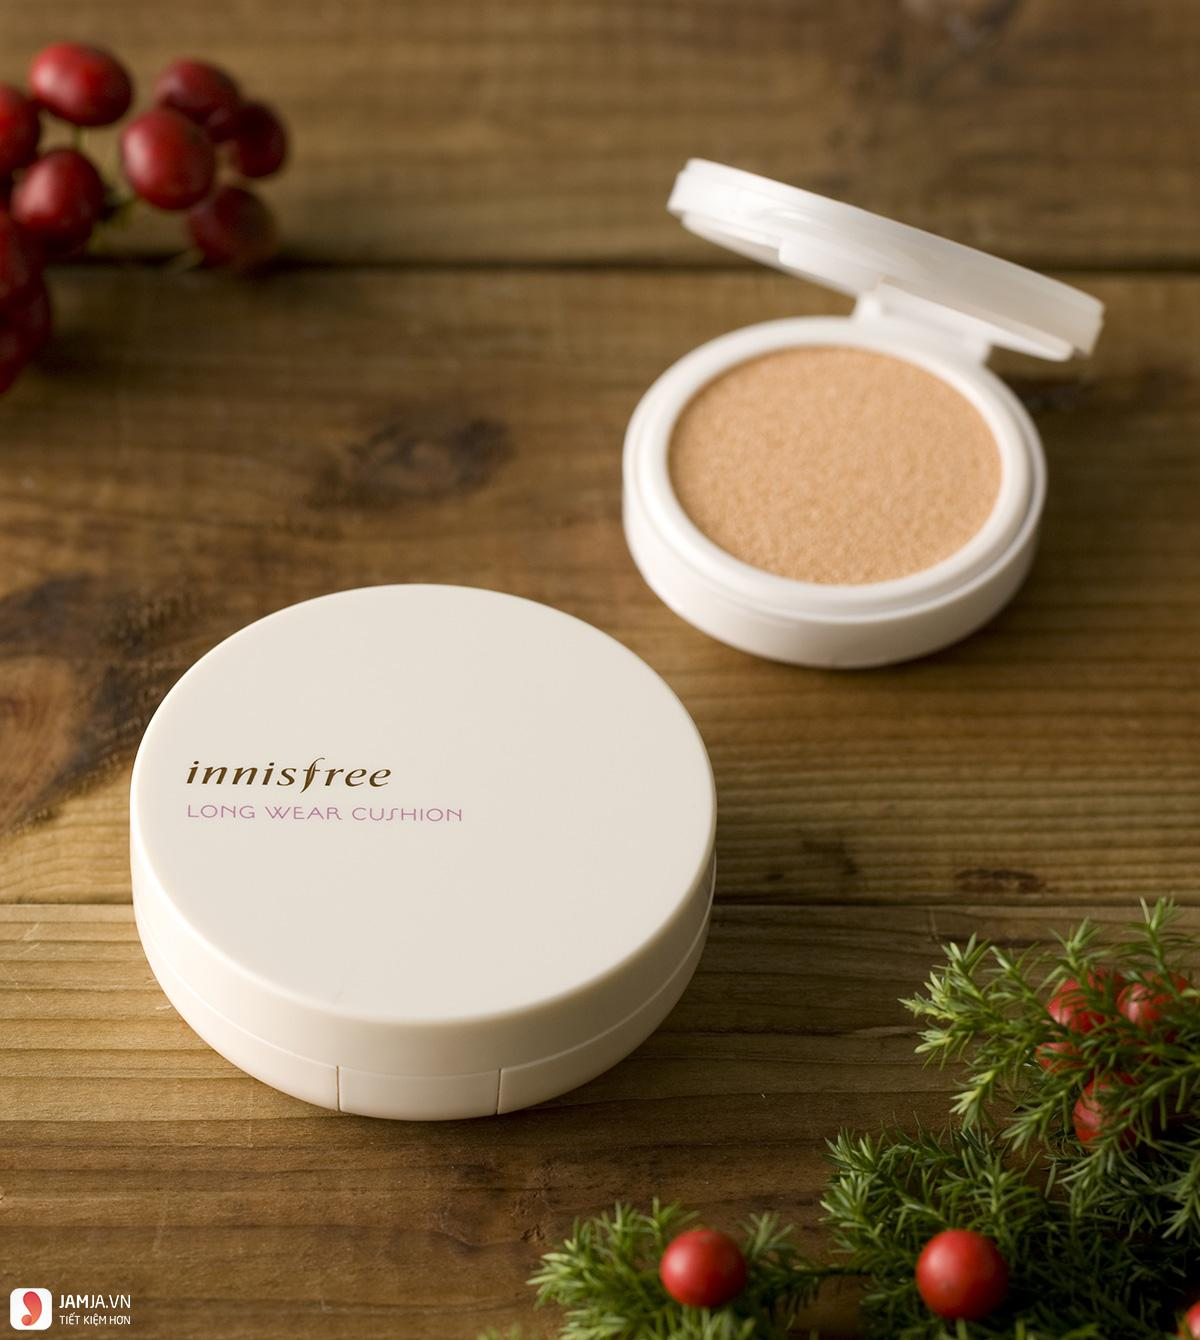 Innisfree Long Wear Cushion 2